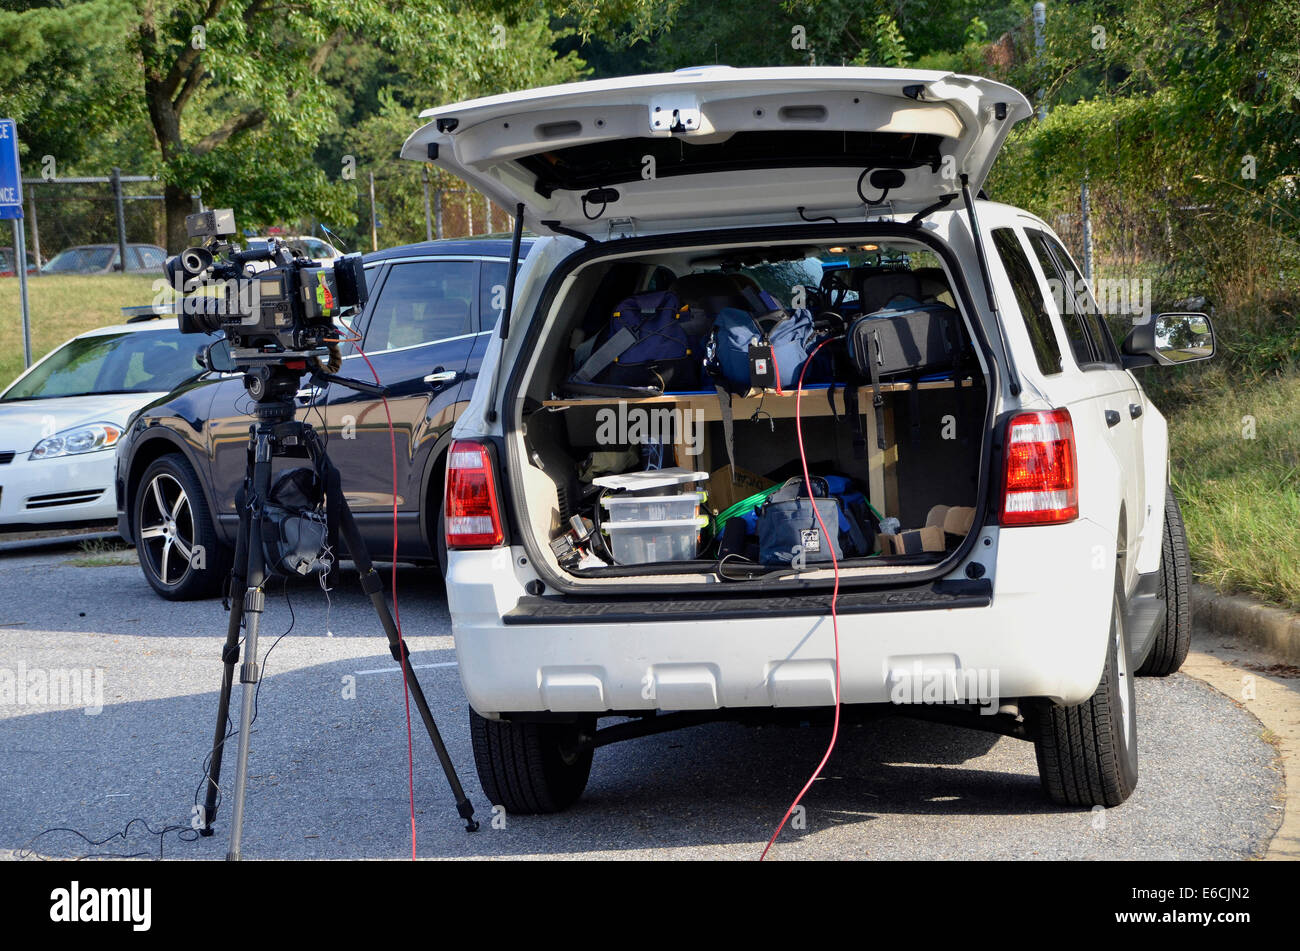 A TV cameraman's camera and his SUV loaded with camera supplies and equipment - Stock Image